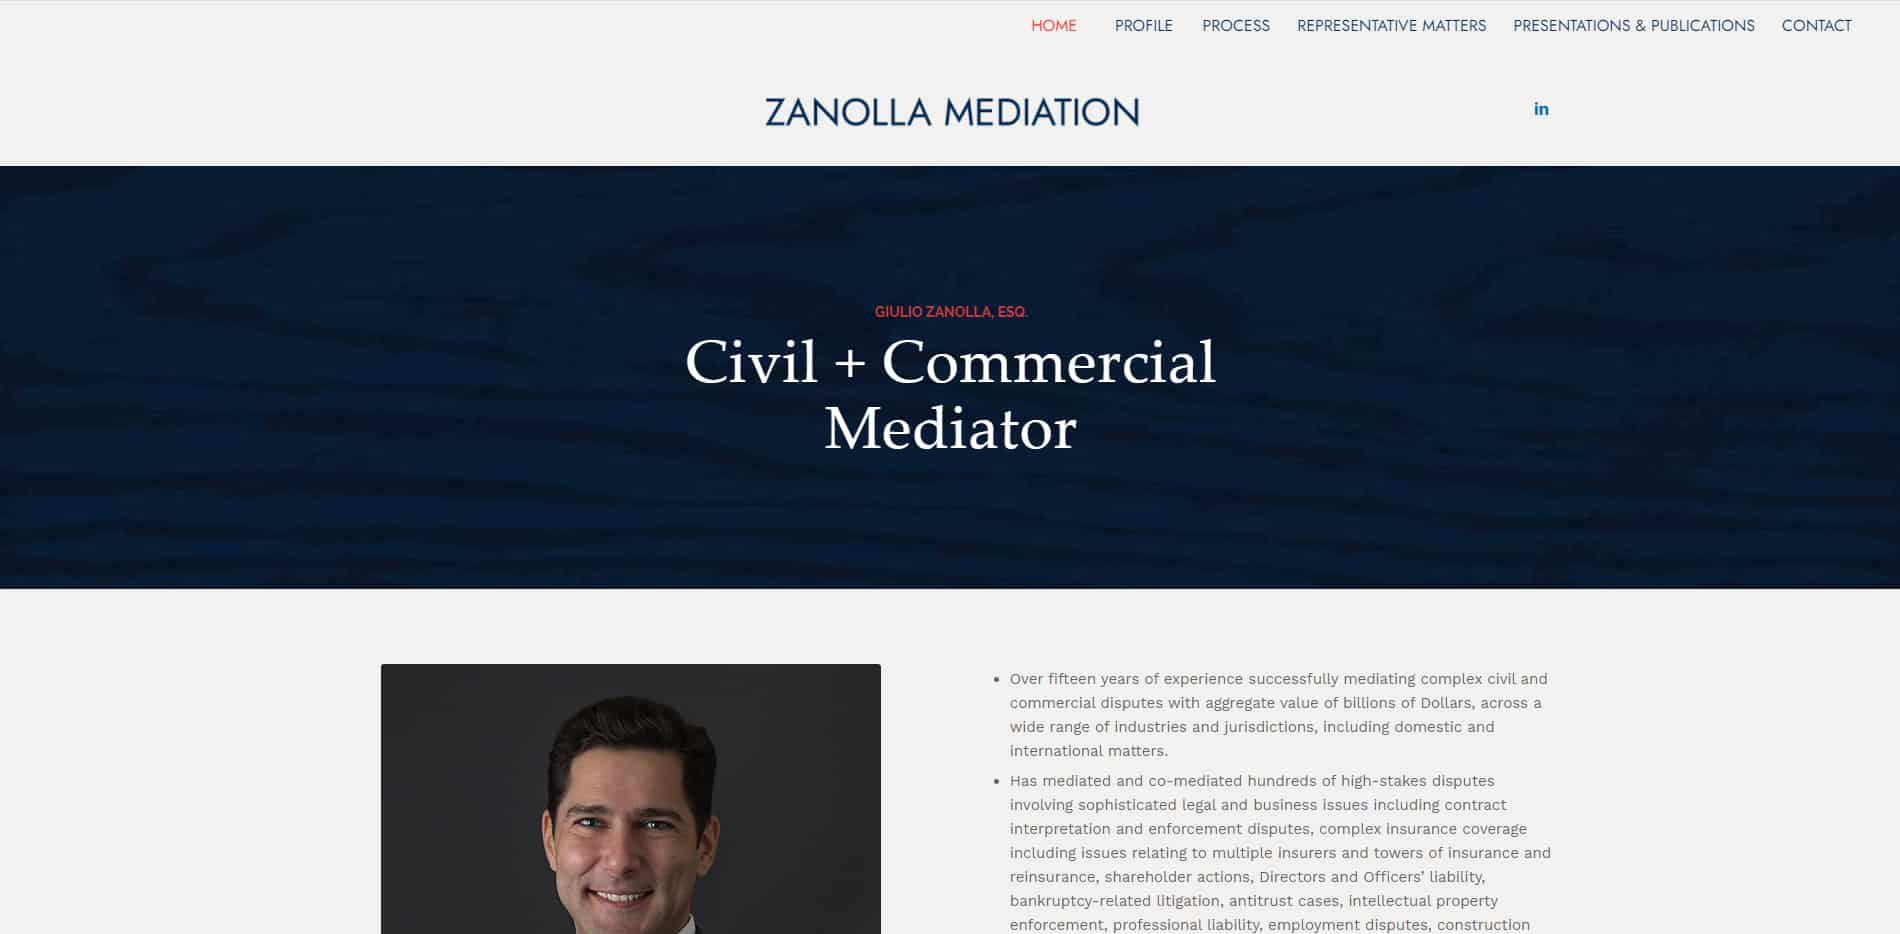 Zanolla Mediation